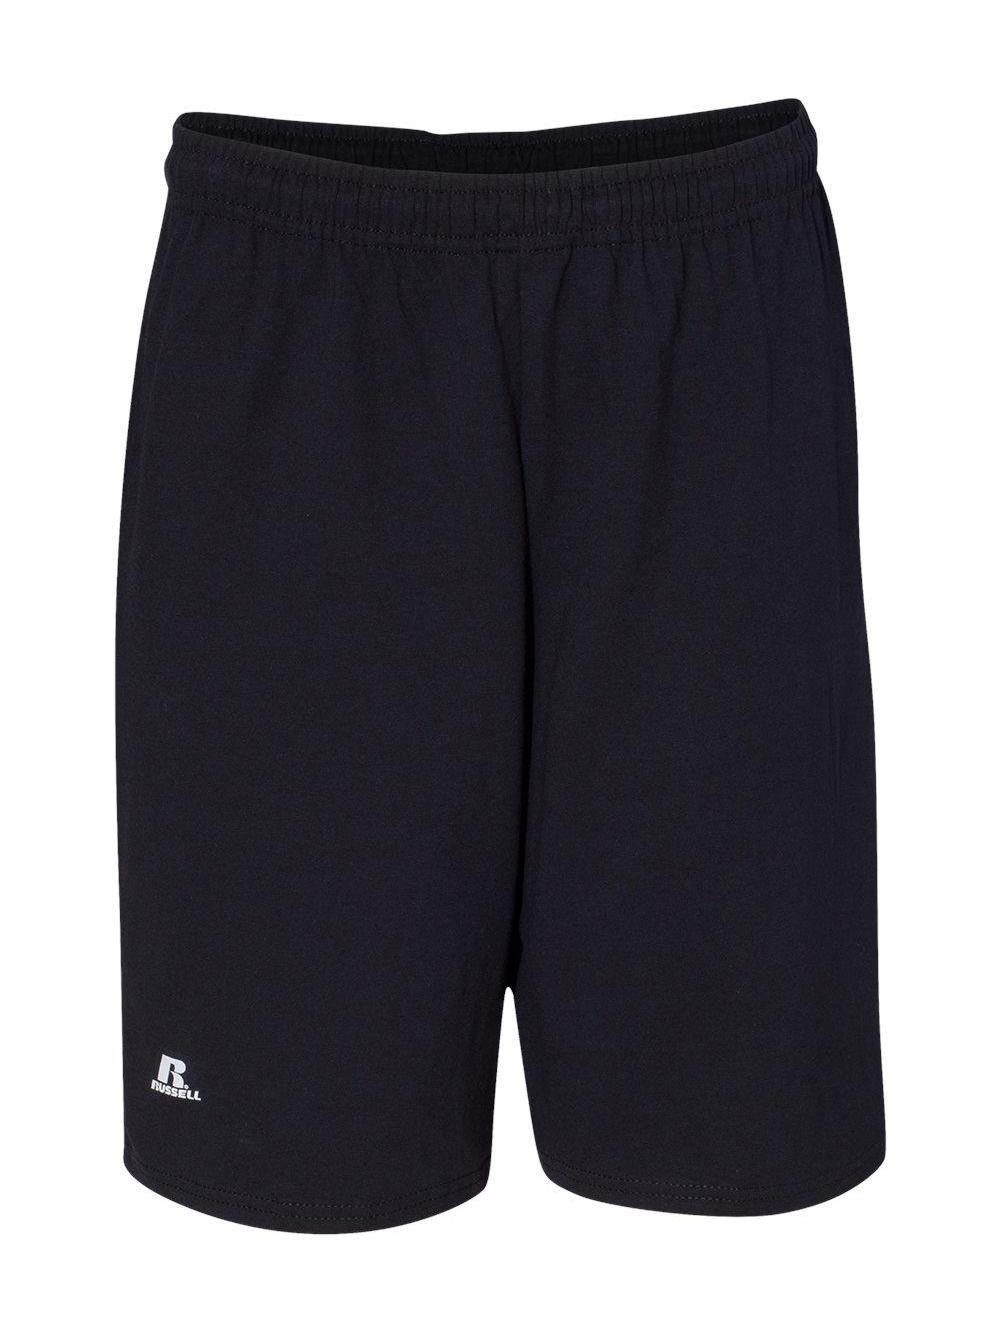 Russell-Athletic-Essential-Jersey-Cotton-Shorts-with-Pockets-25843M thumbnail 5